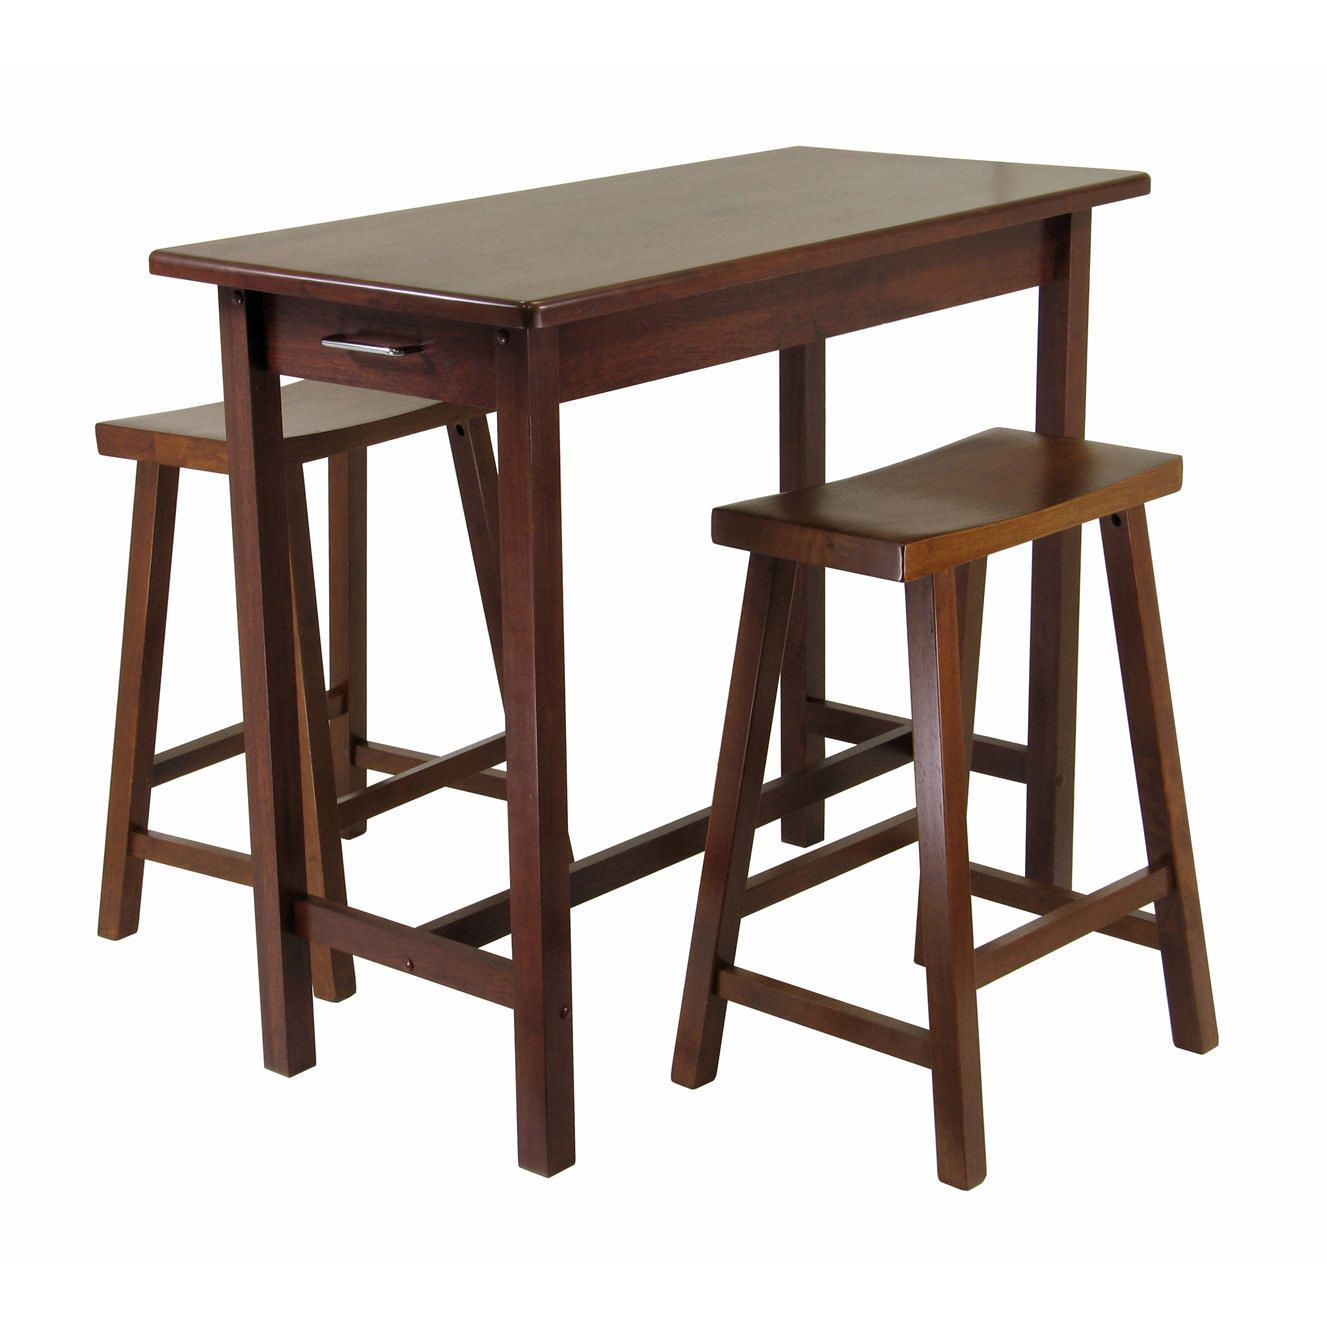 12pc Kitchen Island Table with stools, item 941244